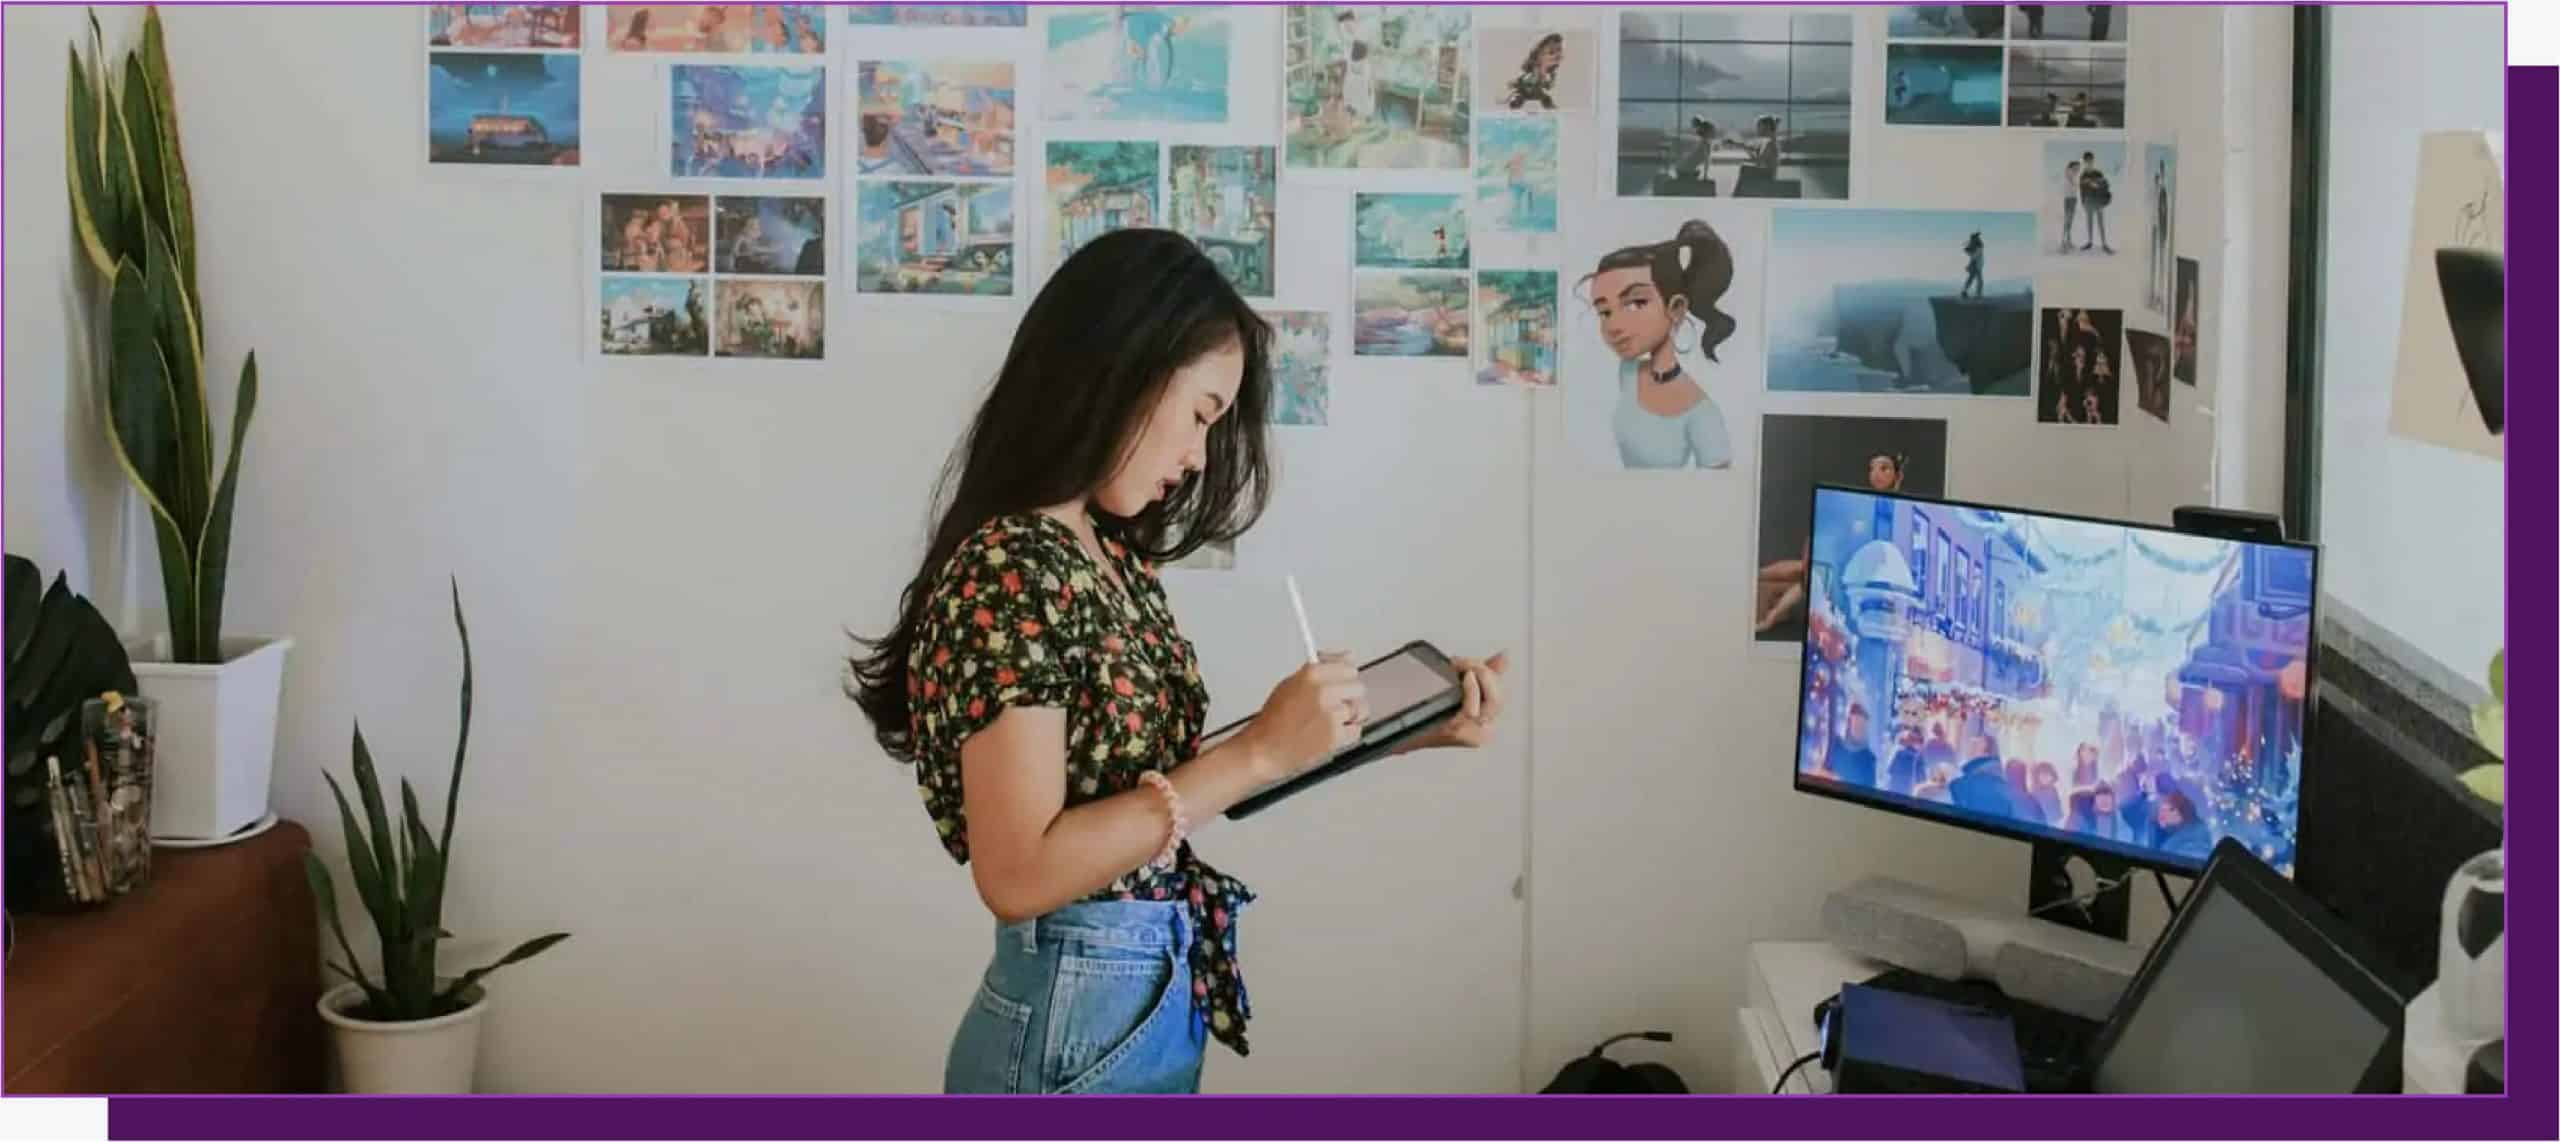 Female using drawing tablet to make digital art to add to her collection